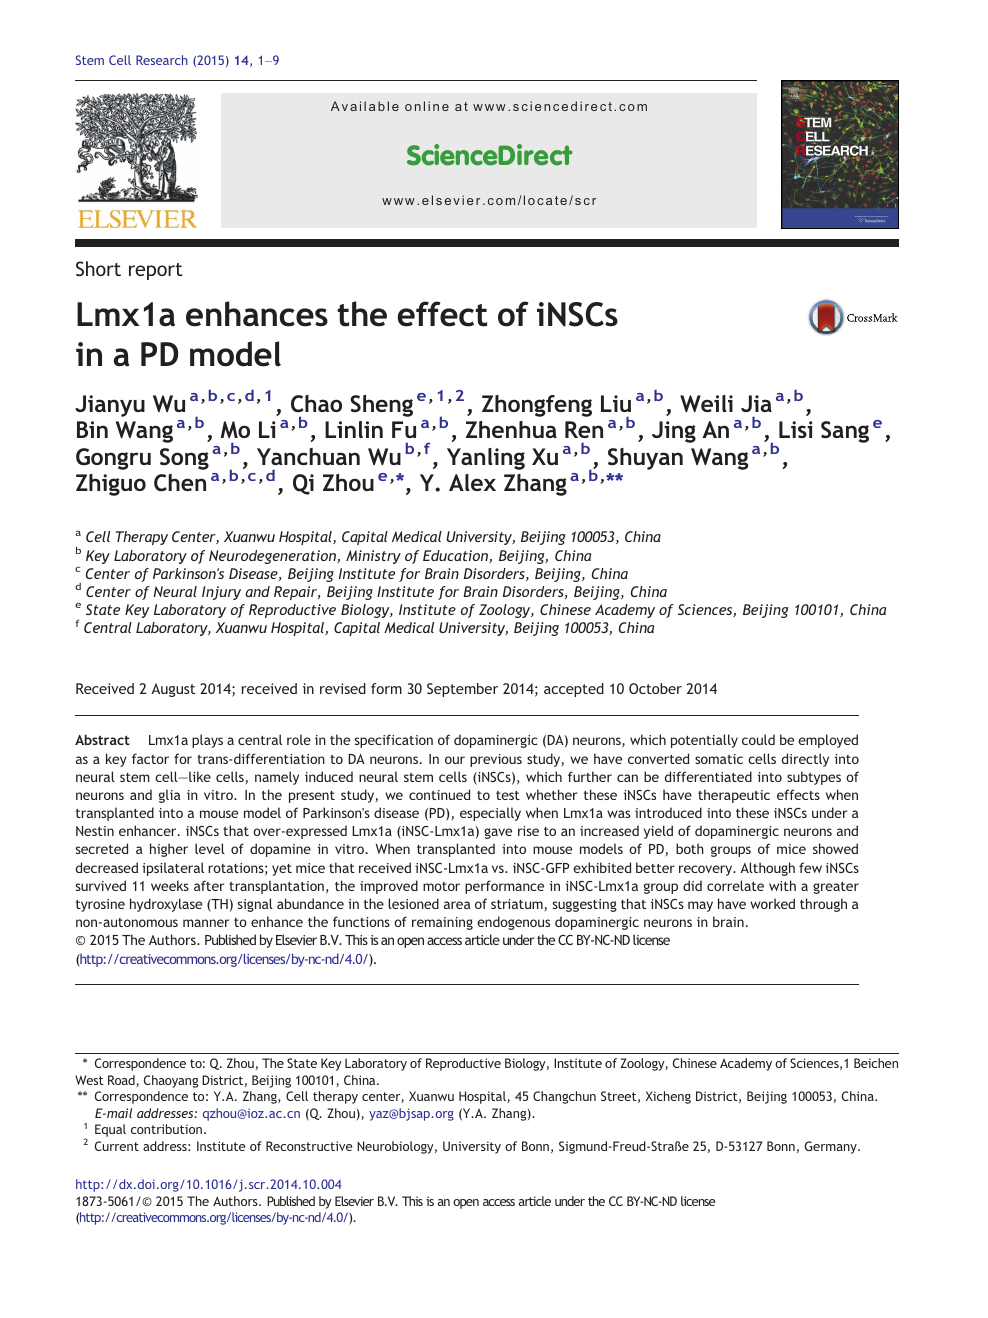 Lmx1a enhances the effect of iNSCs in a PD model – topic of